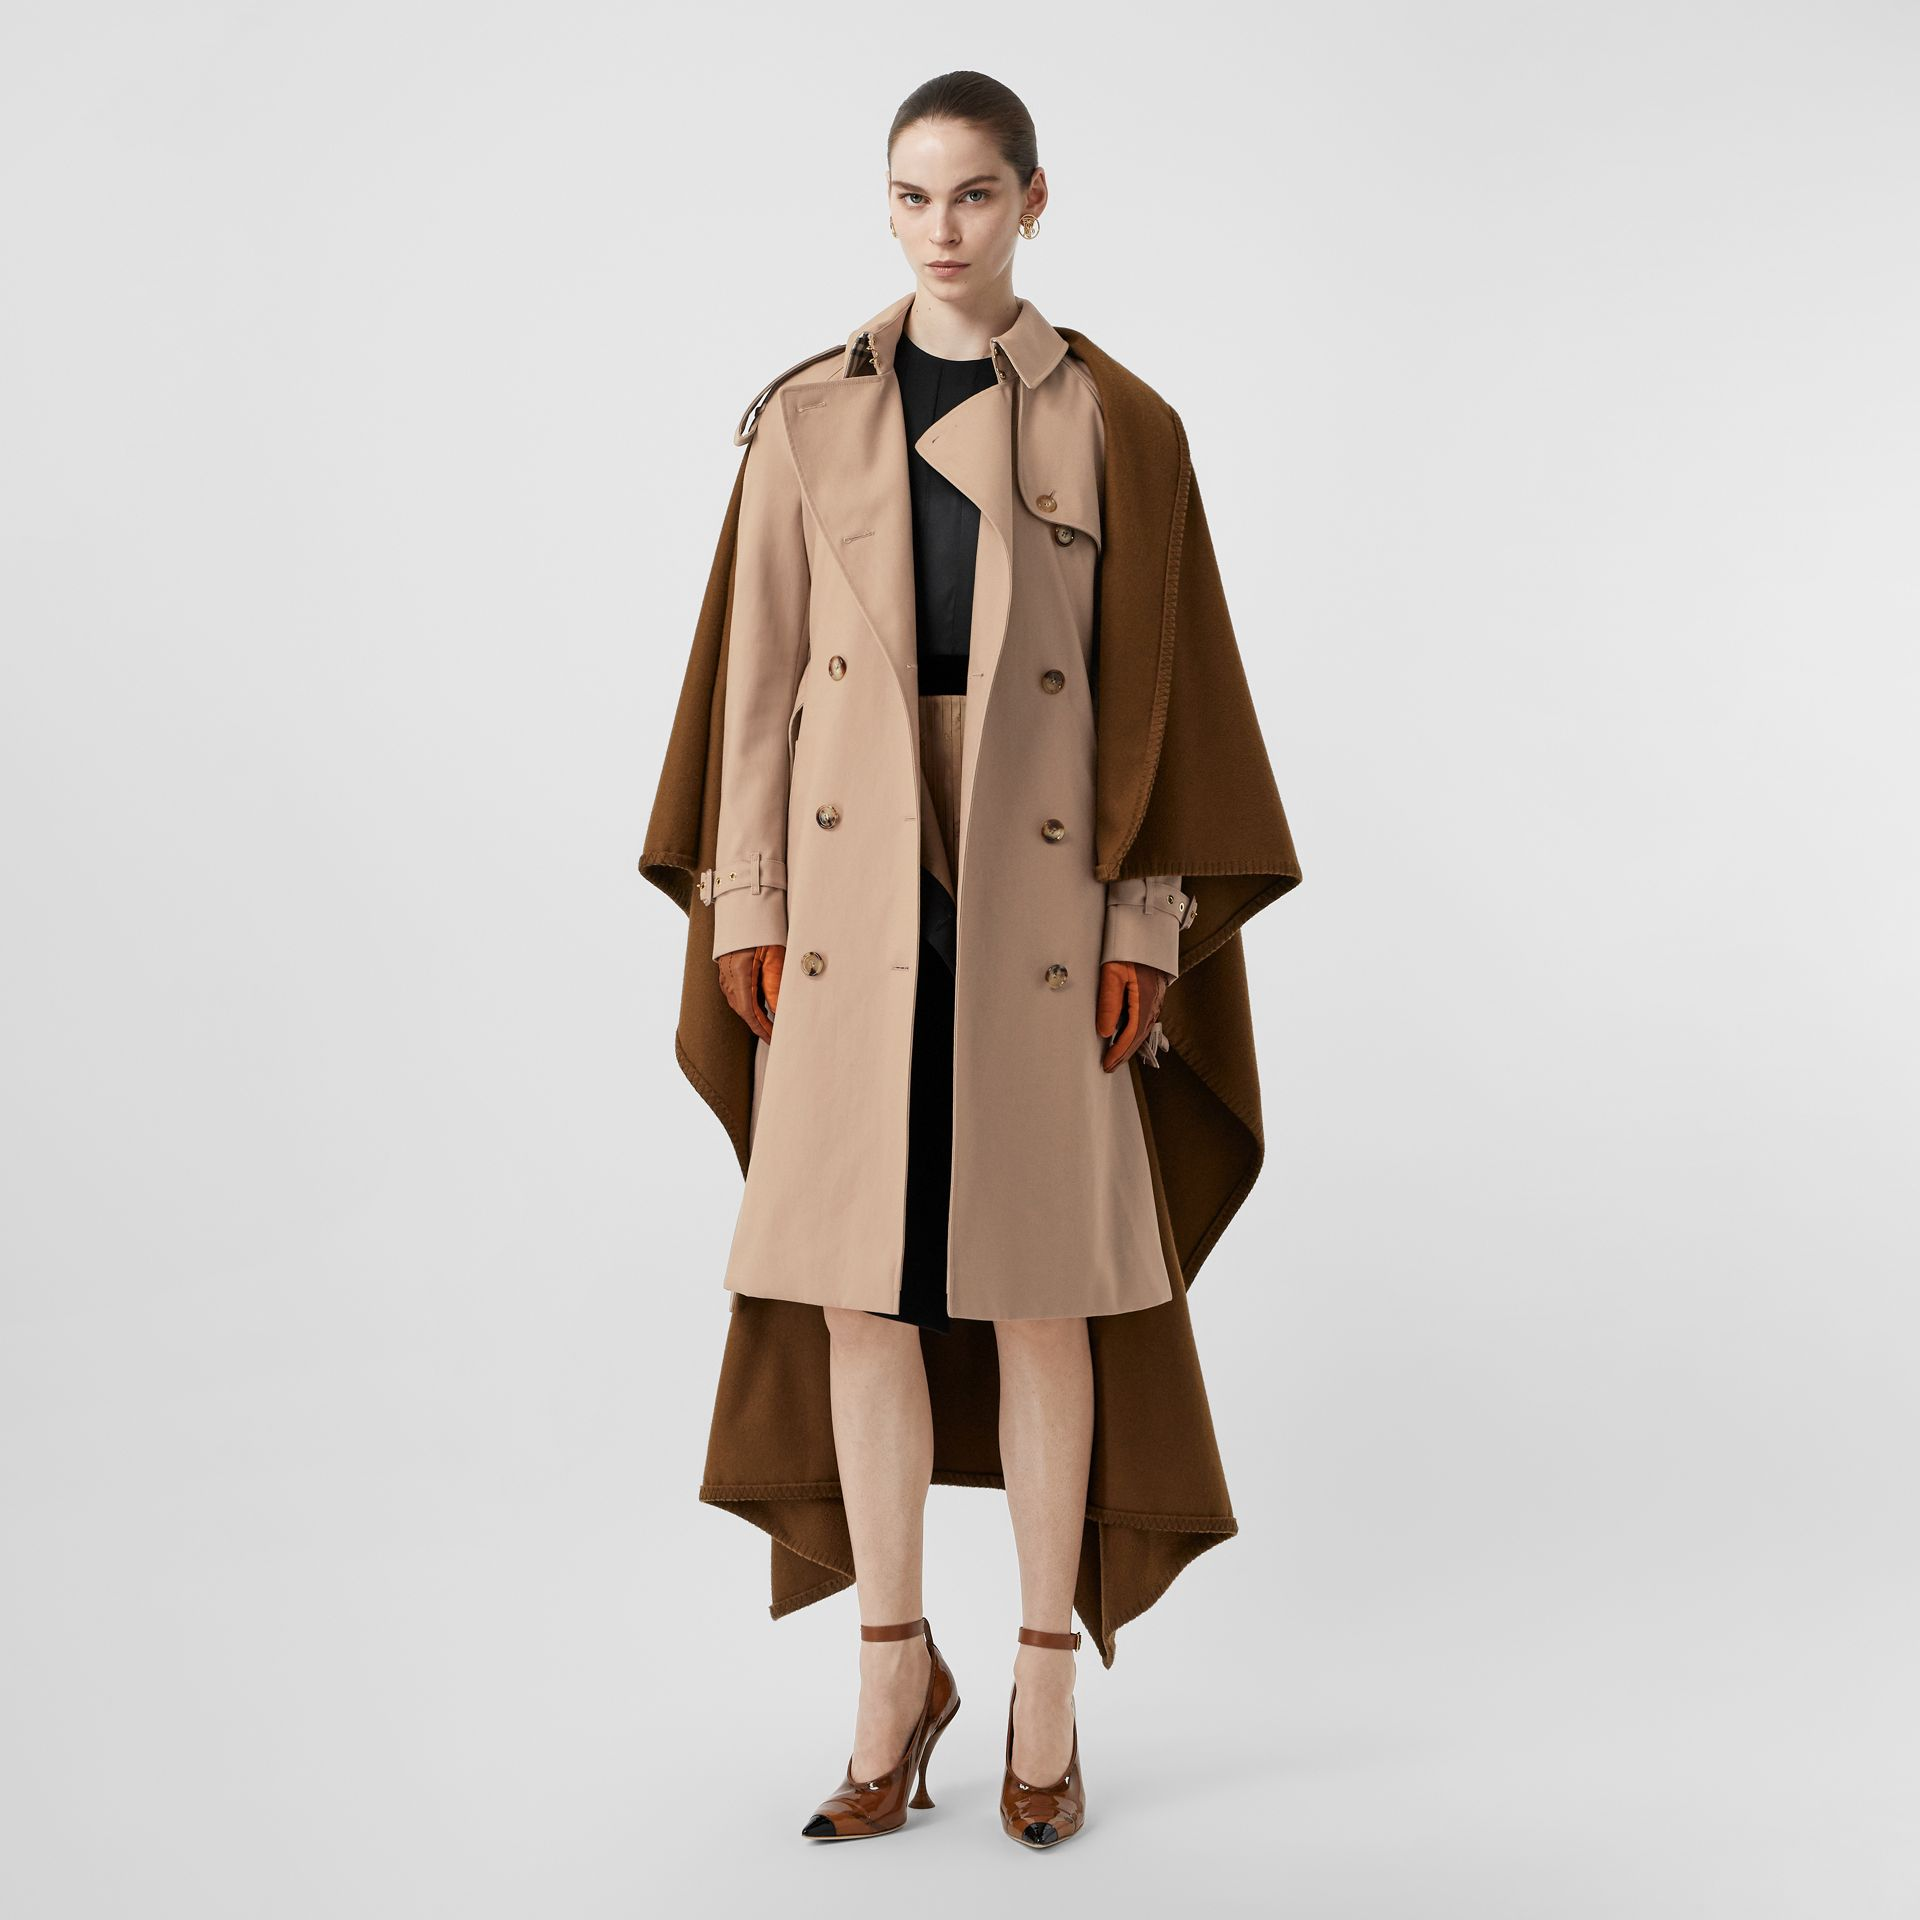 Blanket Detail Cotton Gabardine Trench Coat in Camel - Women | Burberry - gallery image 5